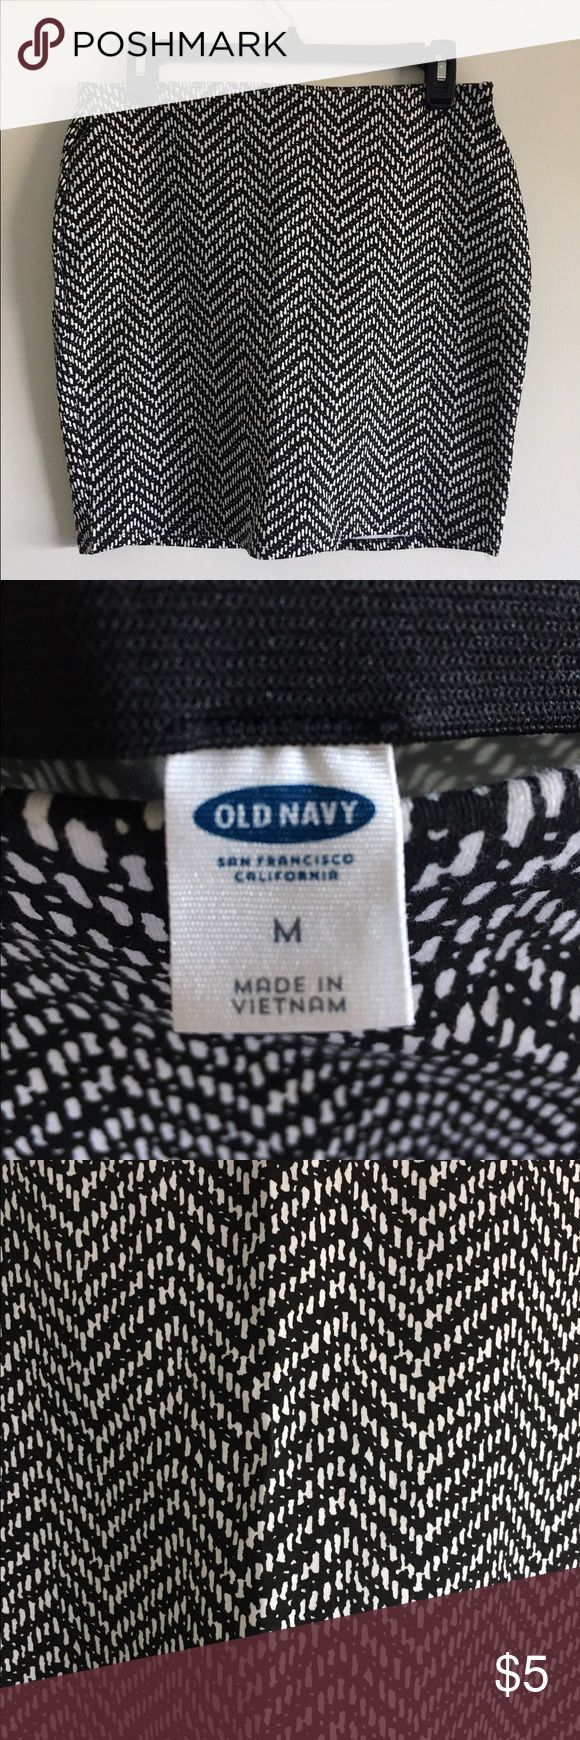 Black and White Chevron Skirt Black and White Chevron Skirt, never worn but no tags. Old Navy, size medium. Form fitting skirt. Old Navy Skirts Pencil